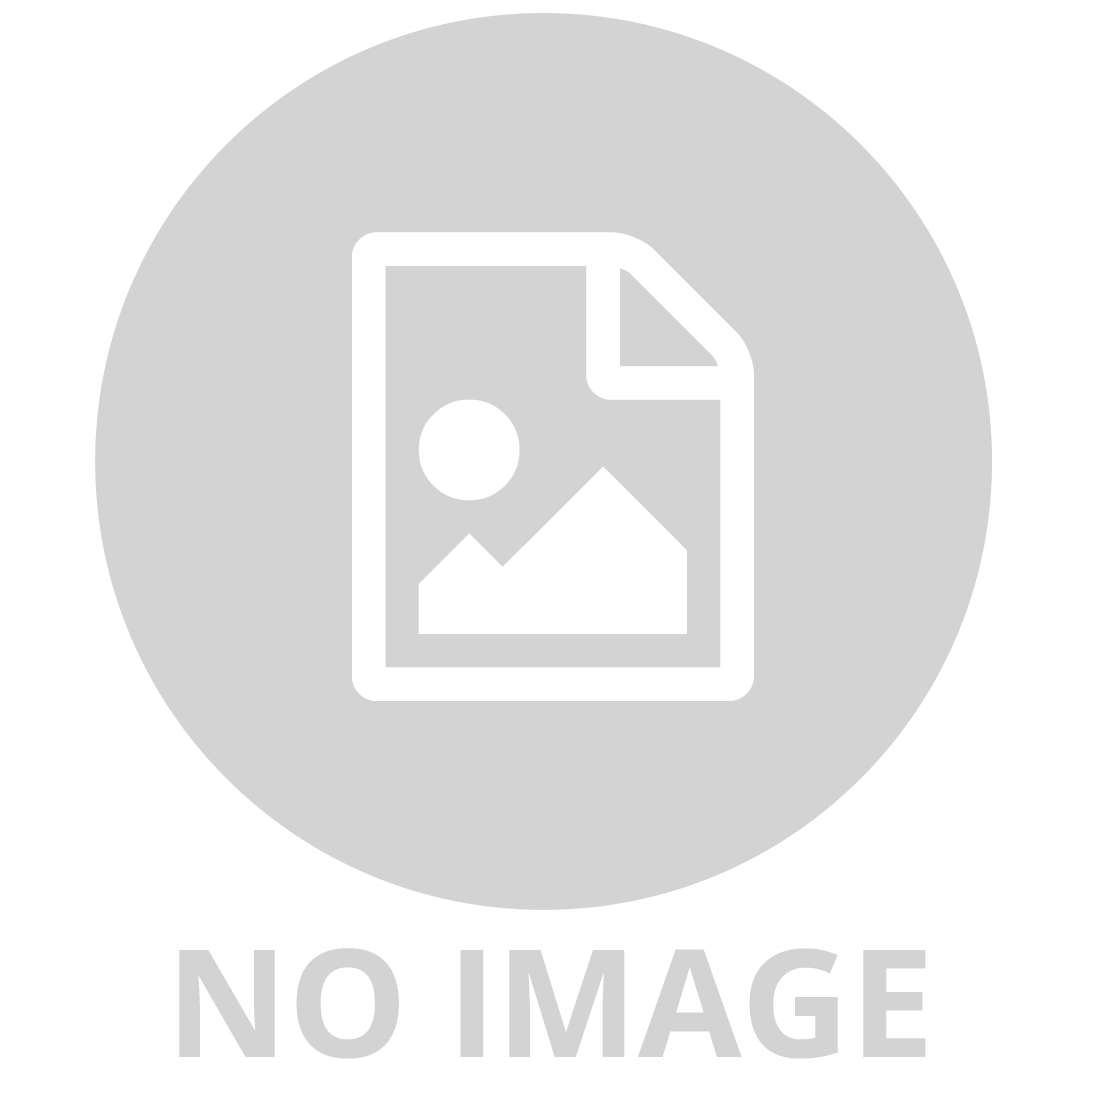 TAMIYA TS-37 LAVENDER SPRAY PAINT FOR PLASTICS